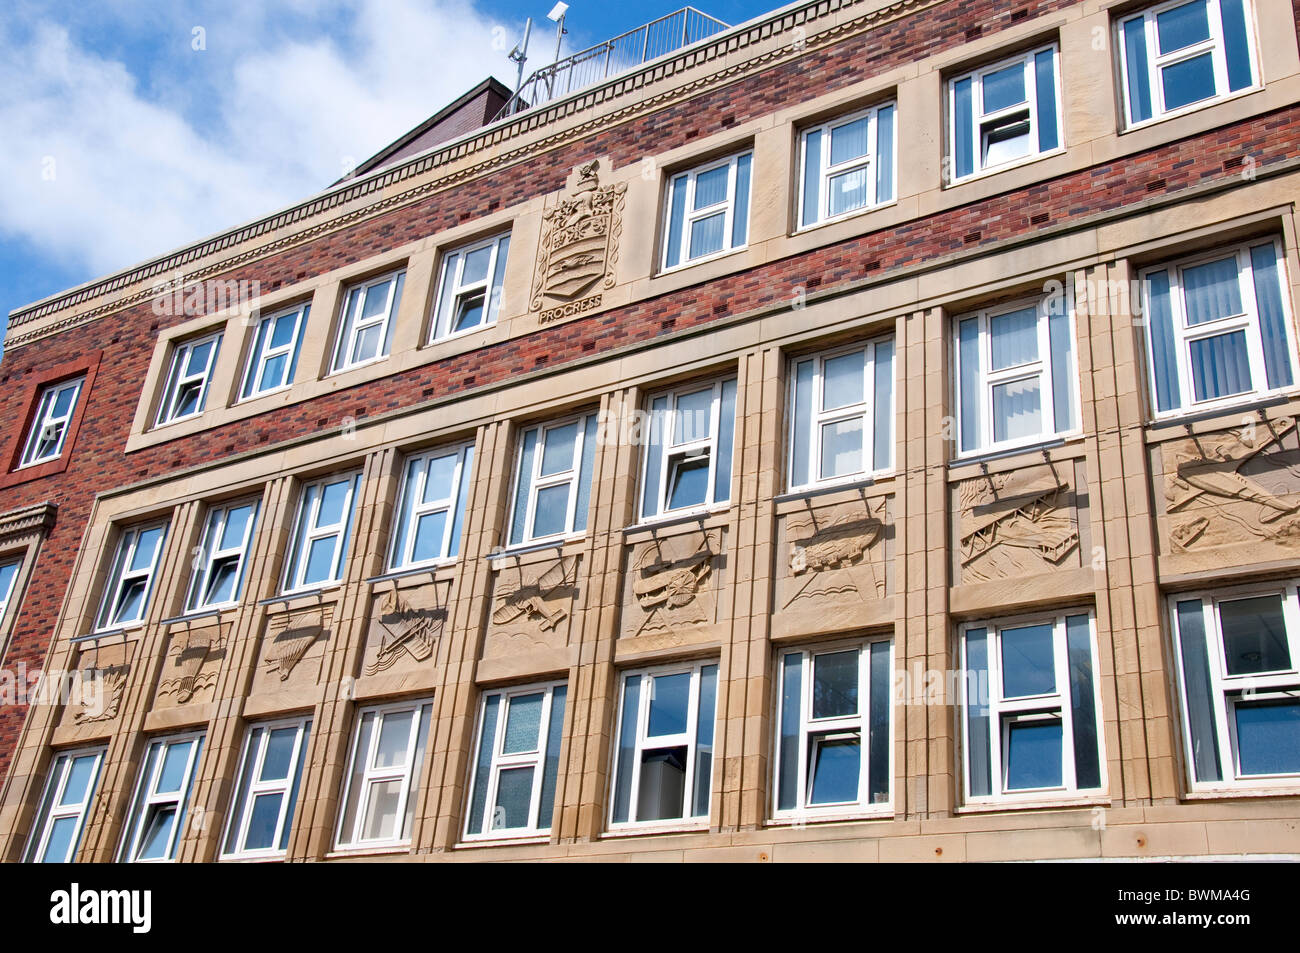 Art Deco Building in Blackpool on the coast of Lancashire in Northern England - Stock Image